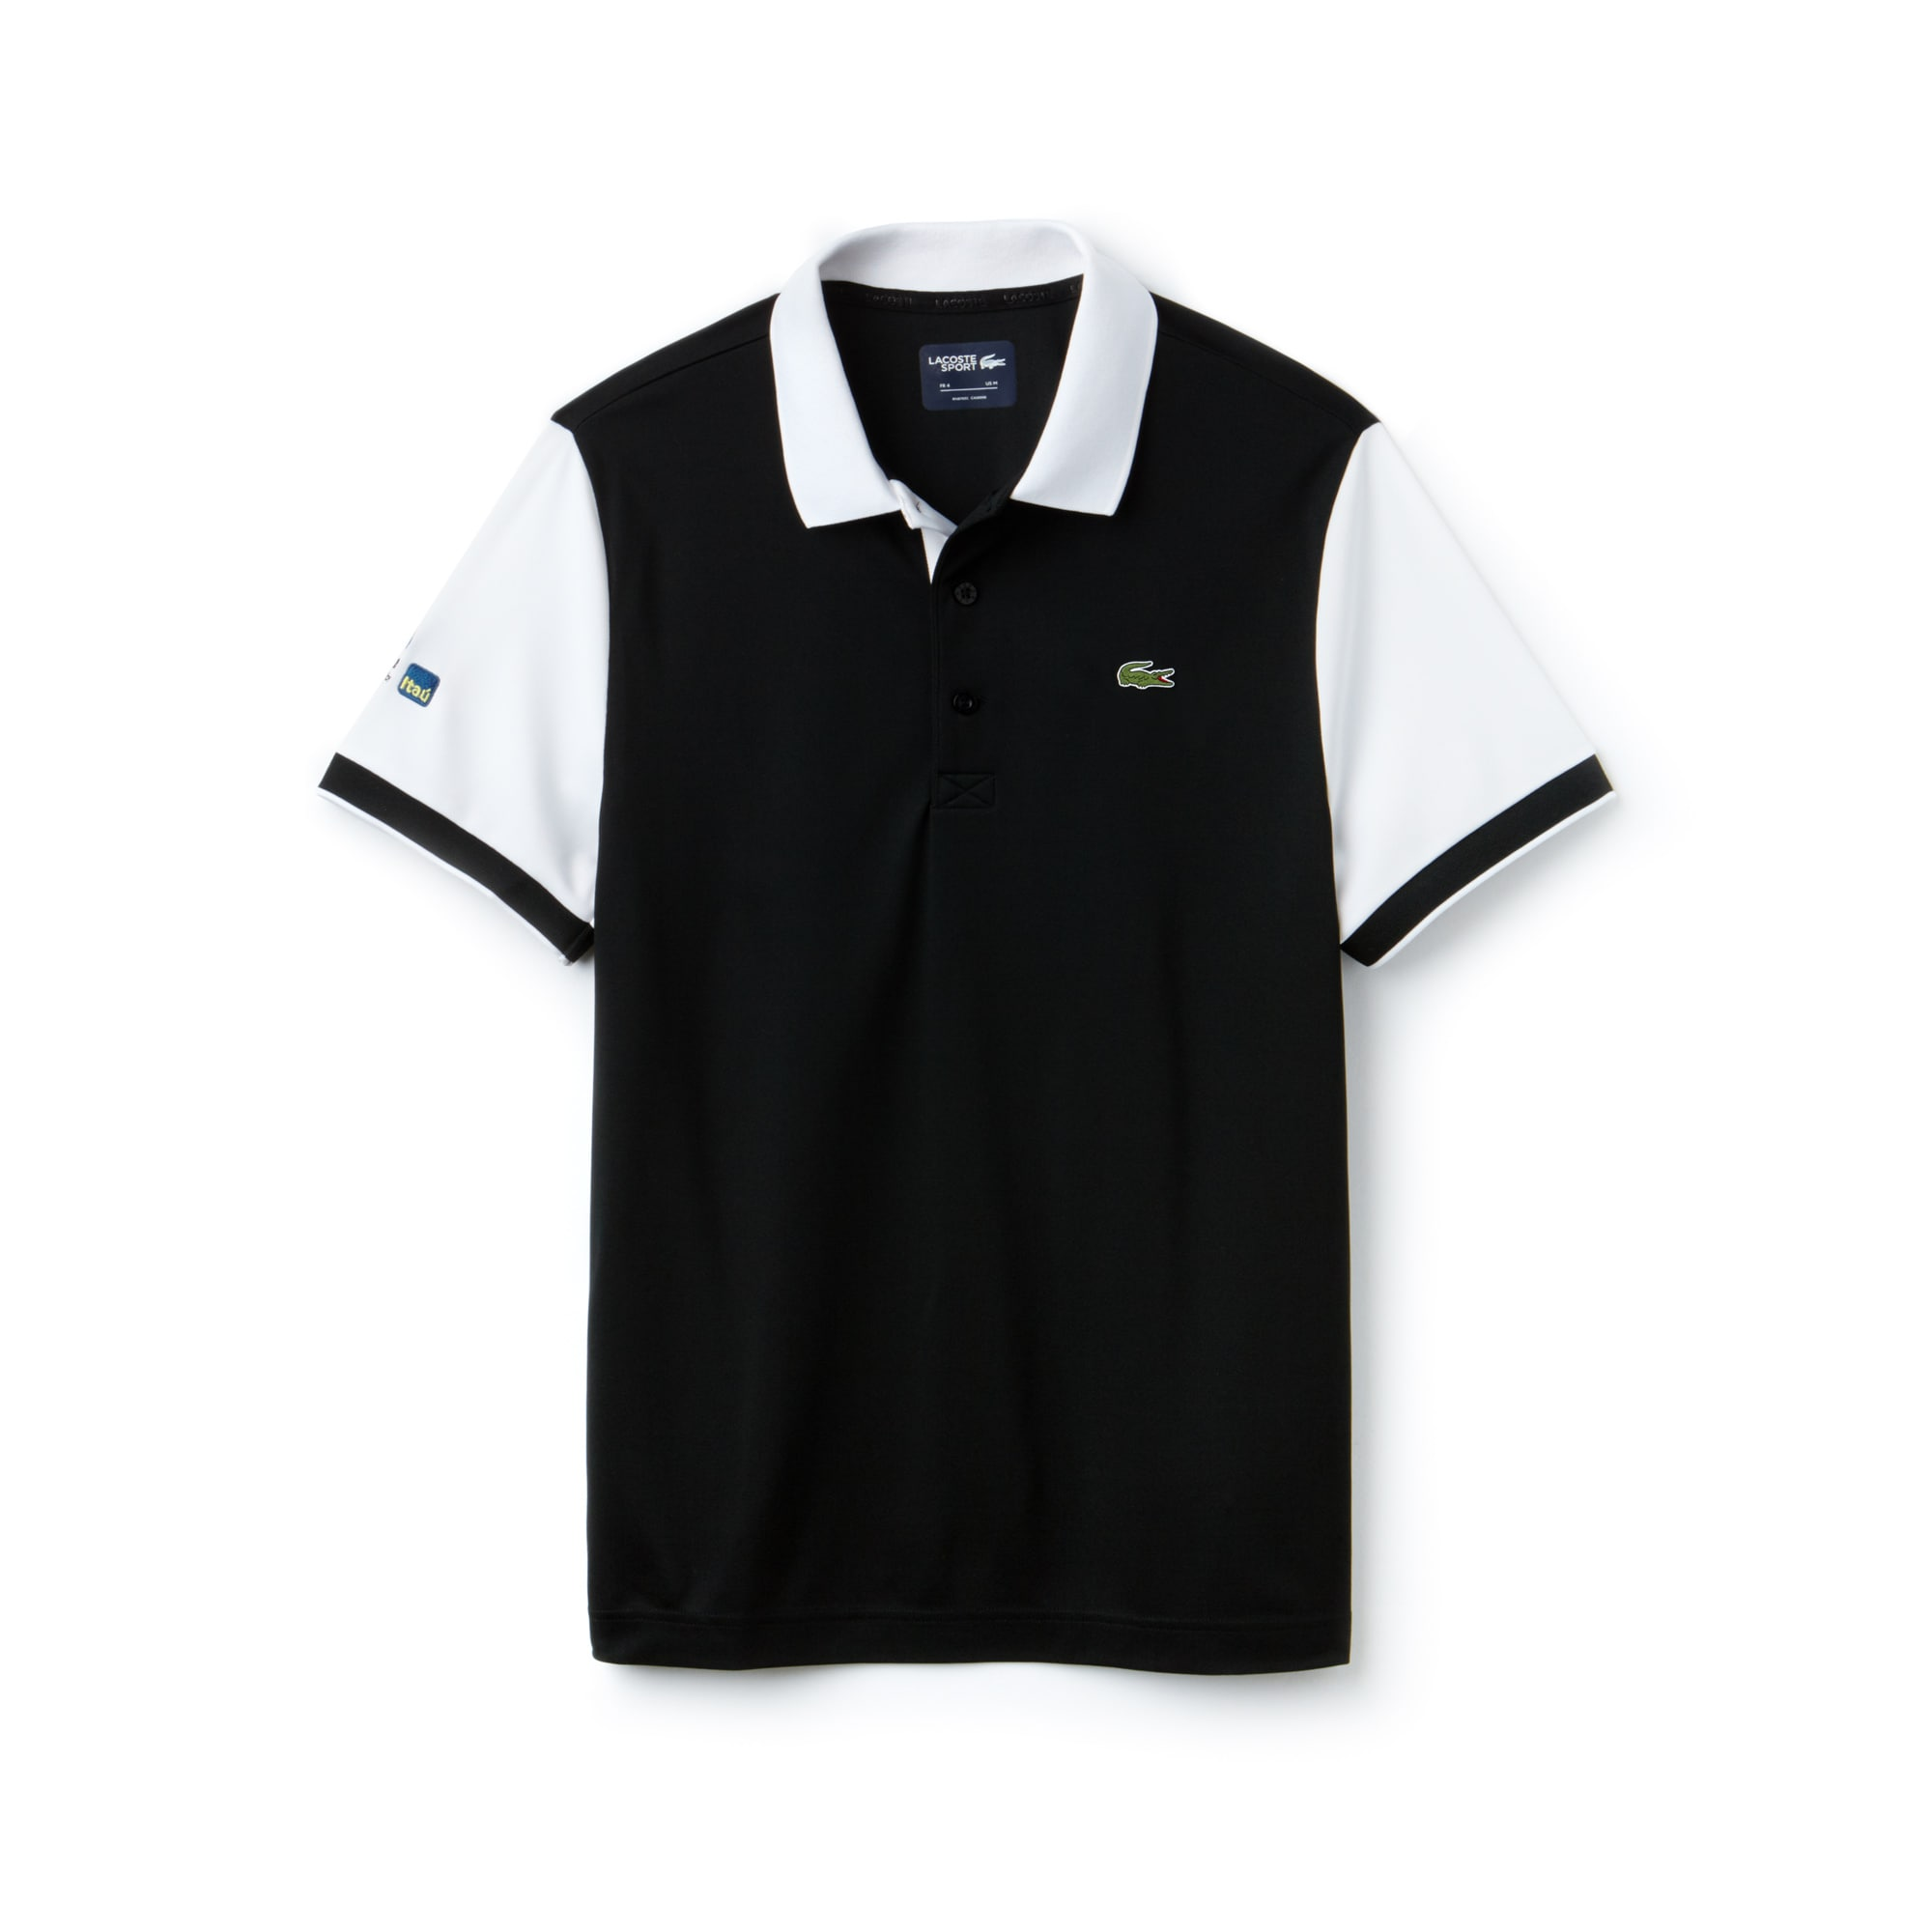 Men's SPORT Miami Open Colorblock Tech Piqué Tennis Polo